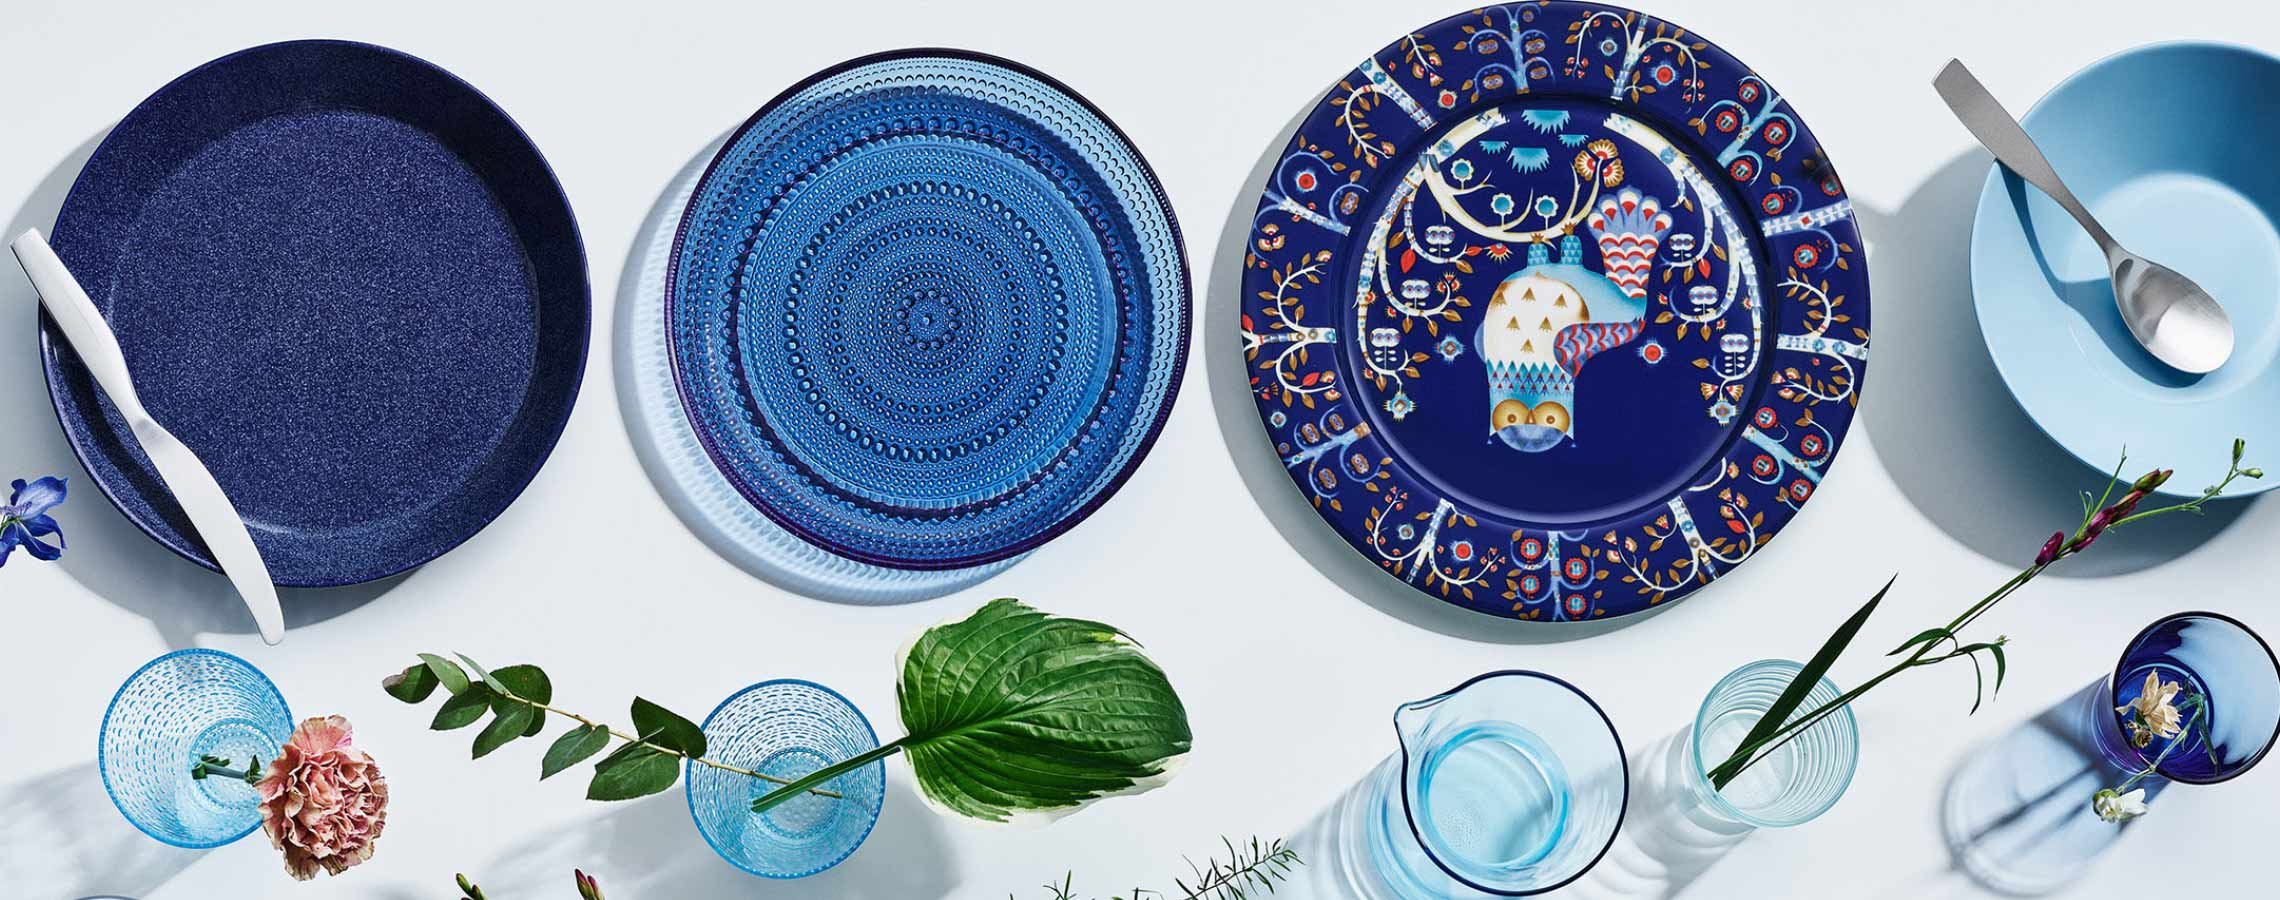 Iittala Kastehelmi and Taika collections